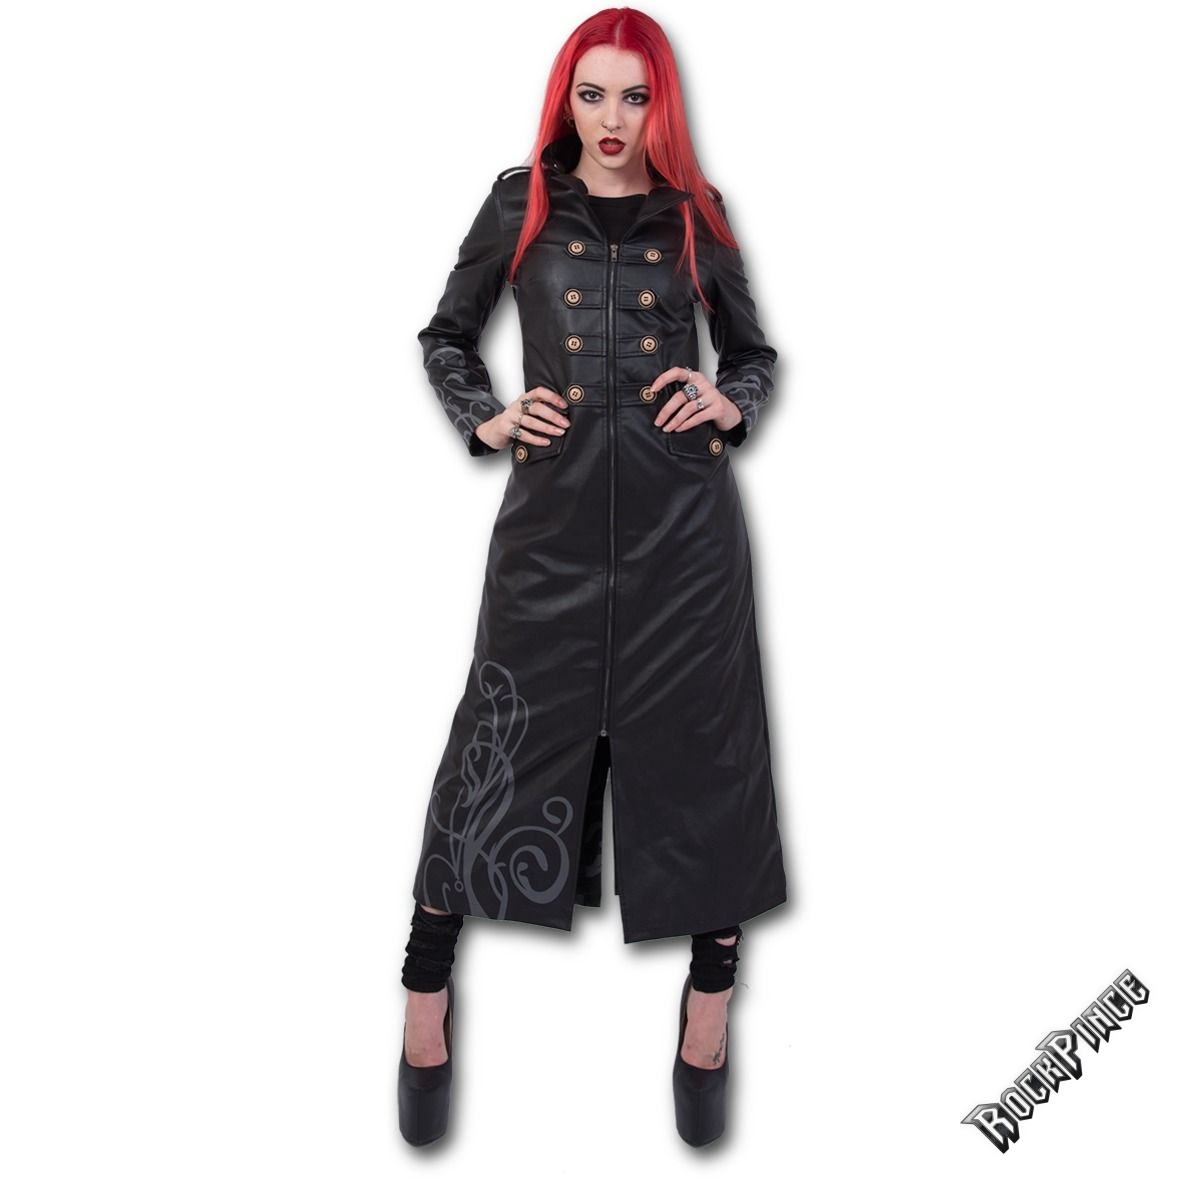 JUST TRIBAL - Gothic Trench Coat PU-Leather Corset Back (Plain) - T139G406